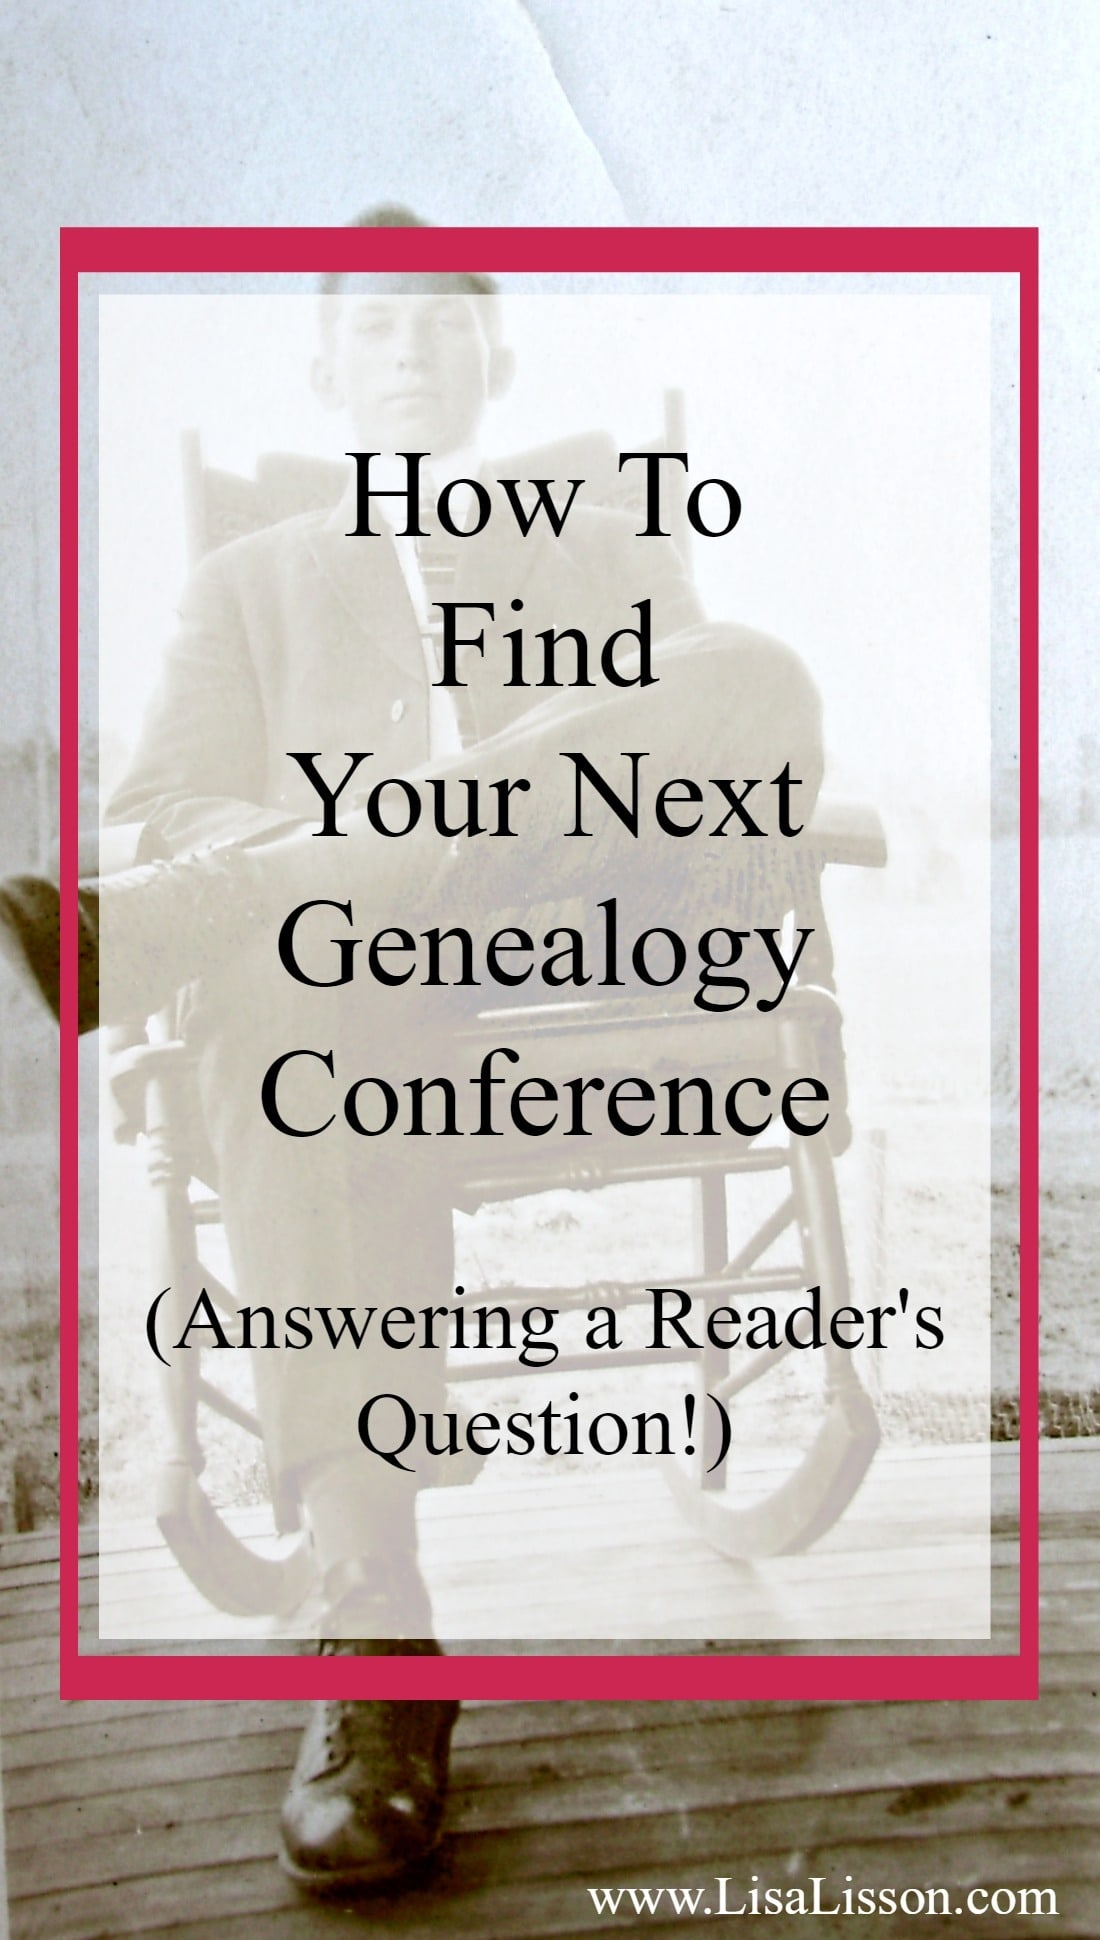 Attending a genealogy conference - big or small- is a great way to further your genealogy education. As you learn new strategies you will sharpen your research skills and make steady progress toward tearing down your genealogical brick walls.